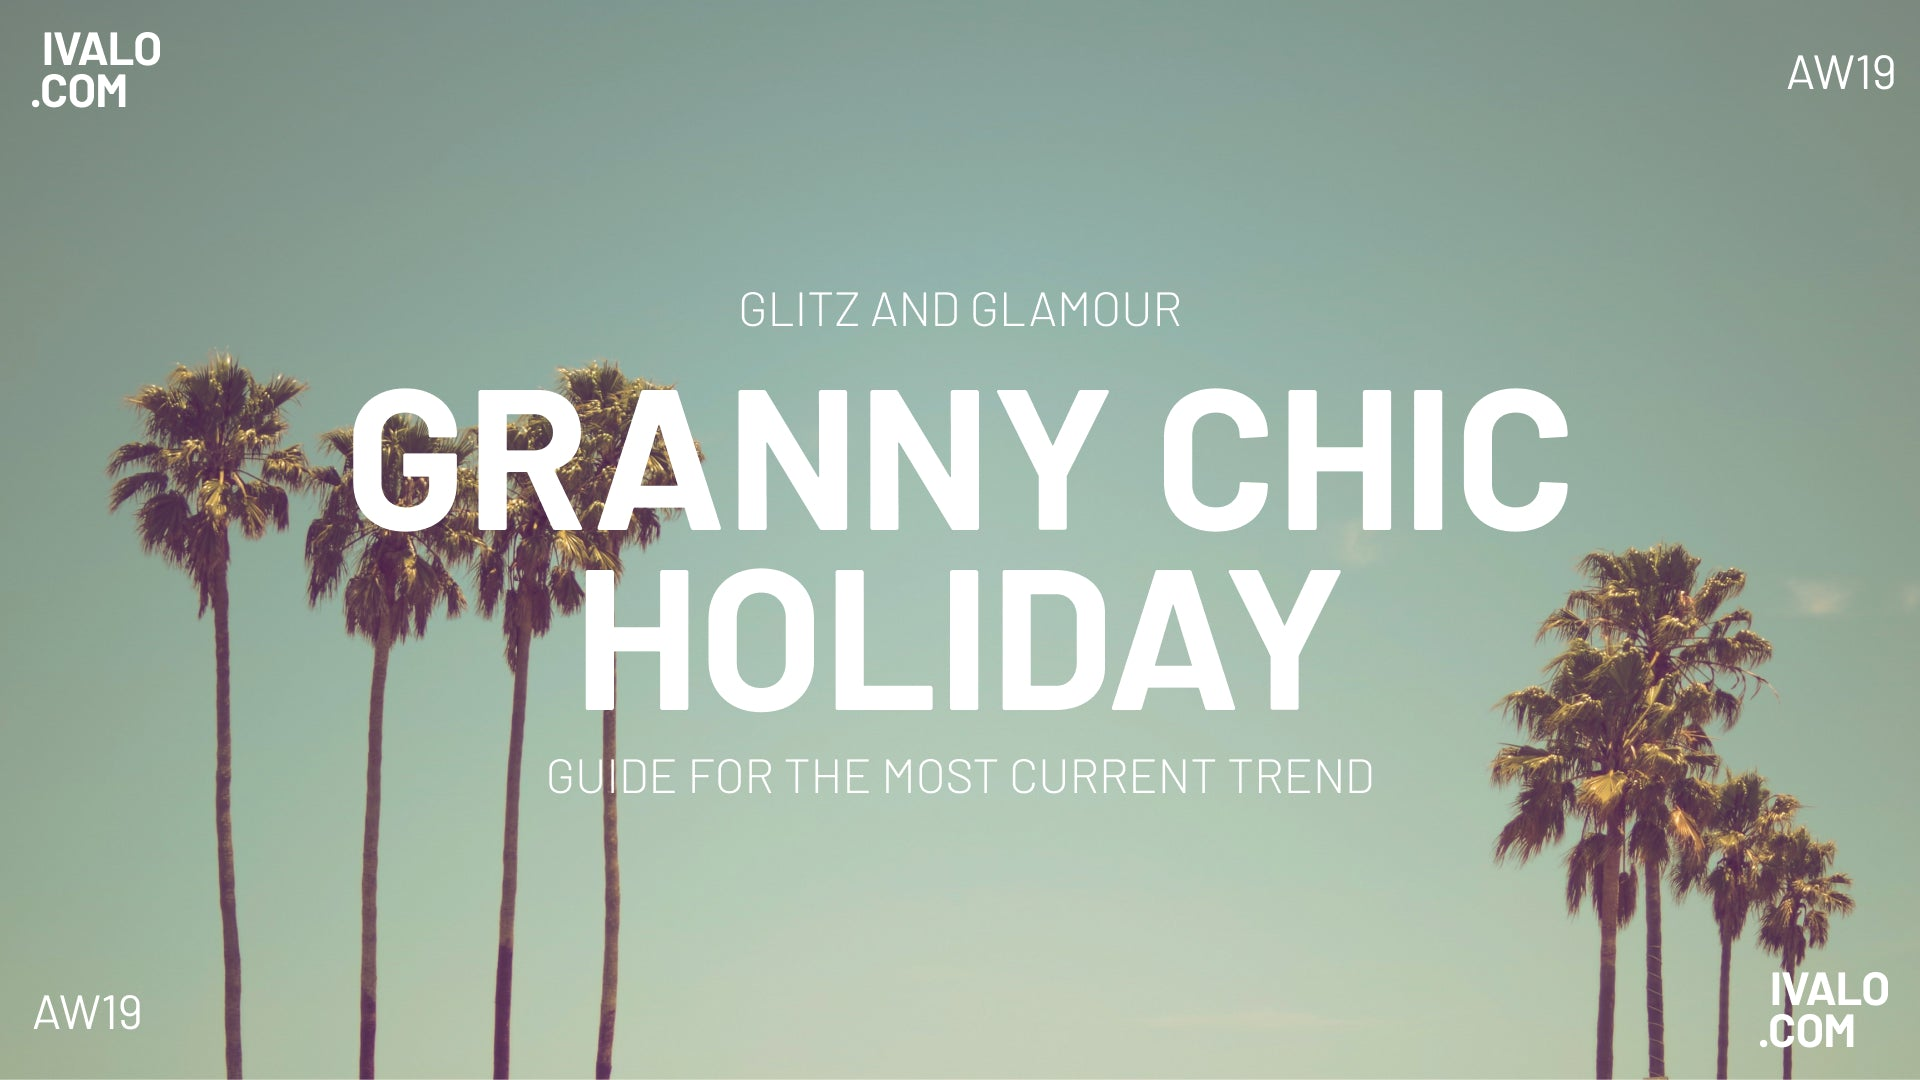 Glitz and glamour. Granny Chic Holiday. Guide for the most current trend. Sunny weather and palm trees